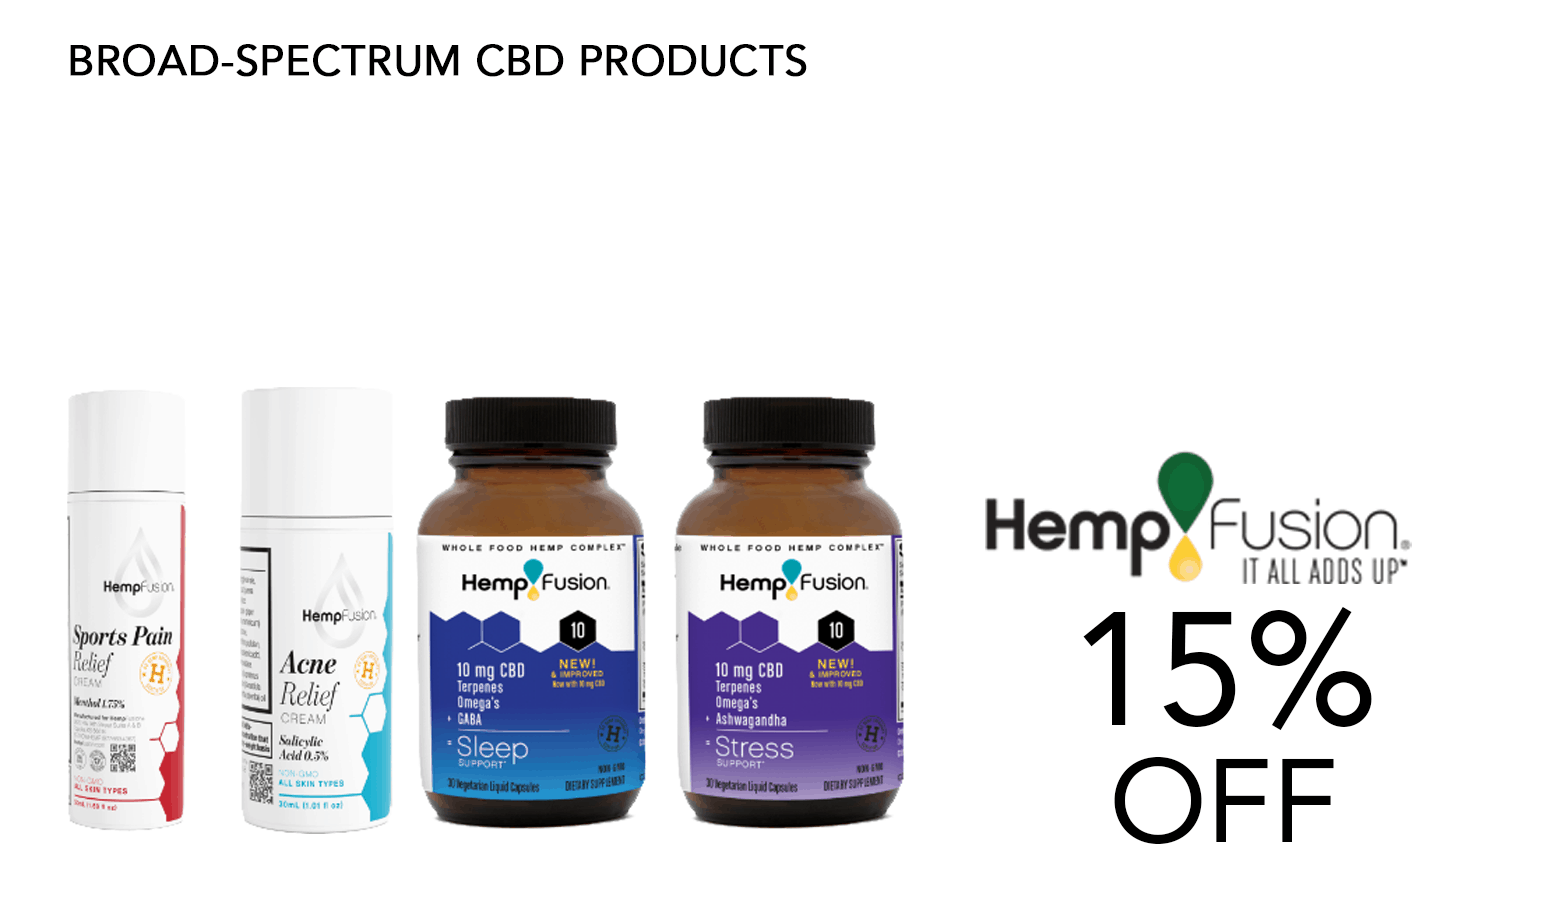 HempFusion CBD Coupon Code Offer Website